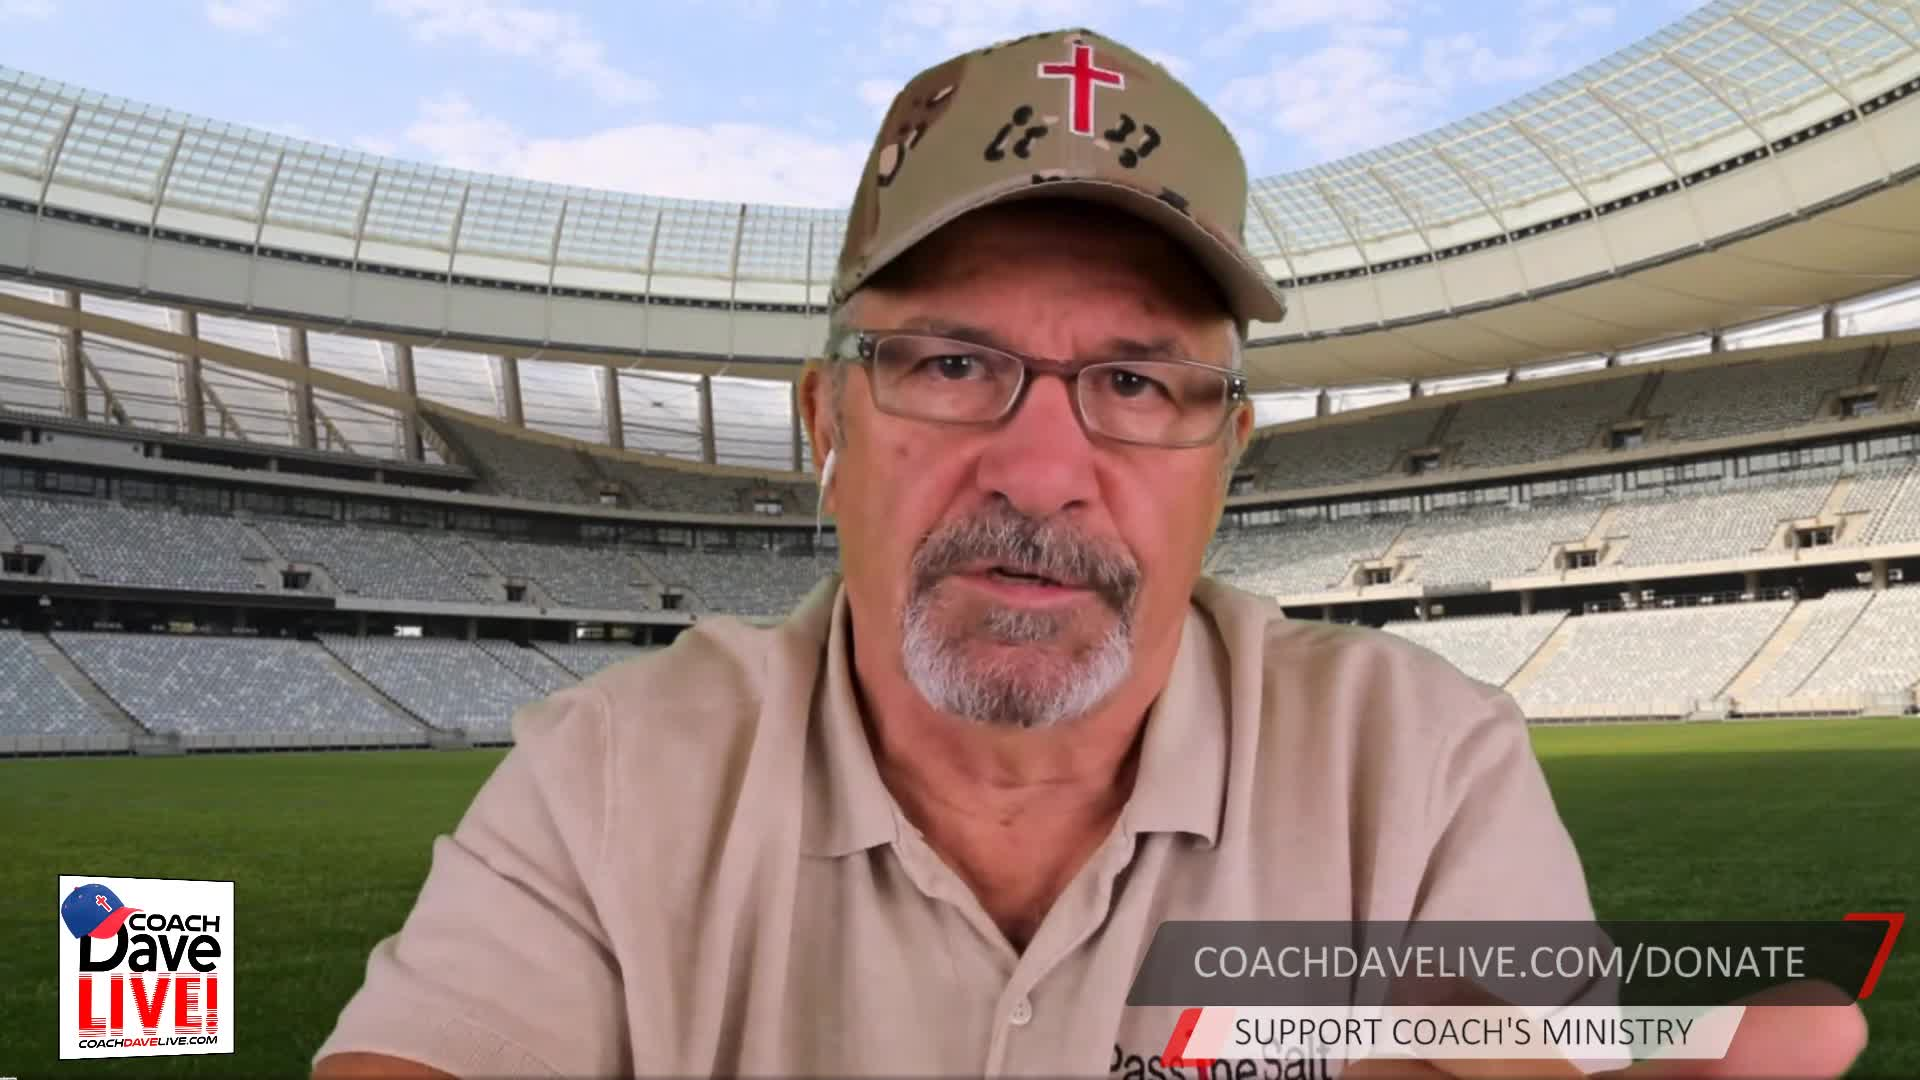 Coach Dave LIVE   10-23-2020   FOWL USE OF THE SWORD